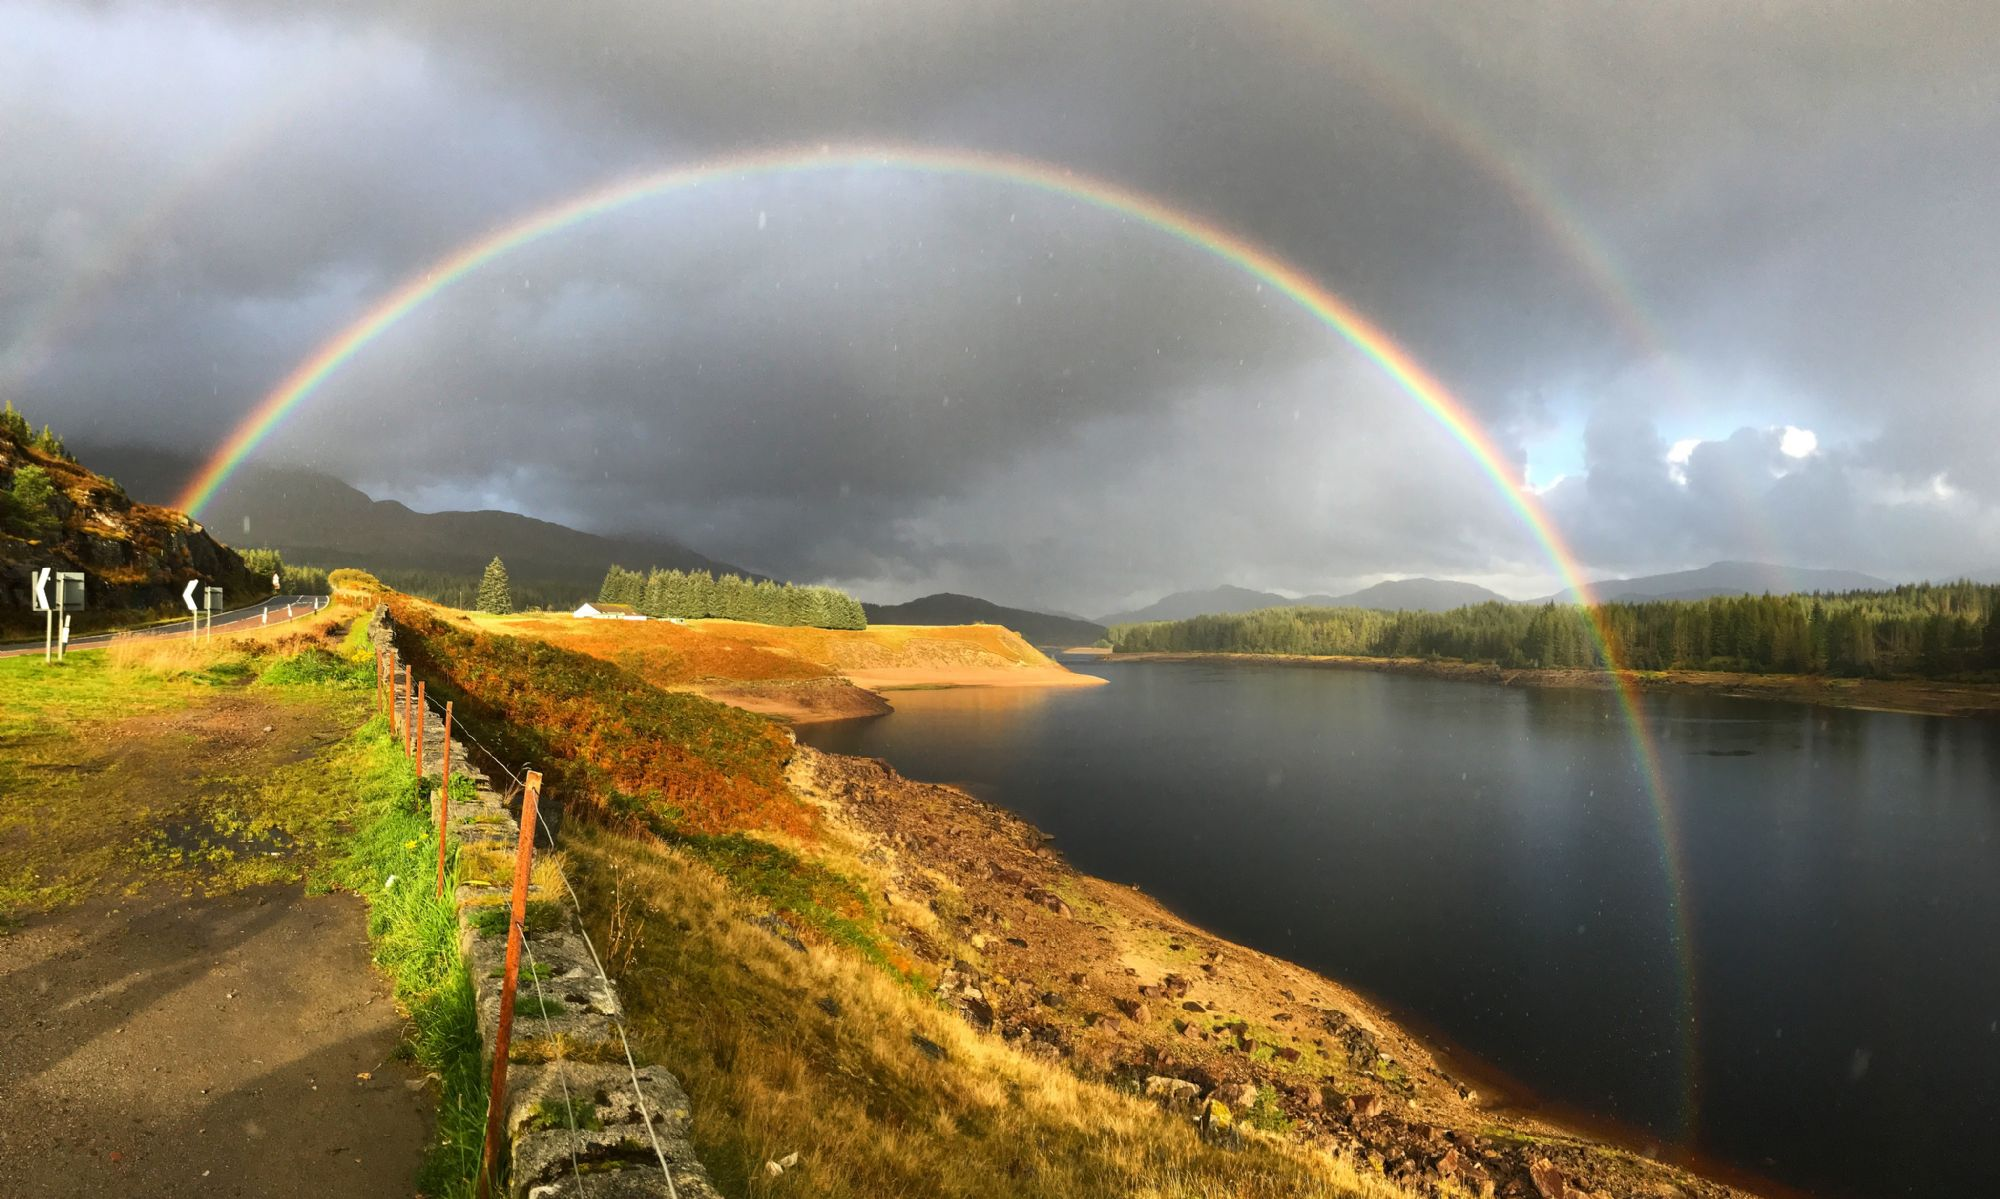 A day full of Rainbows! 127752127752